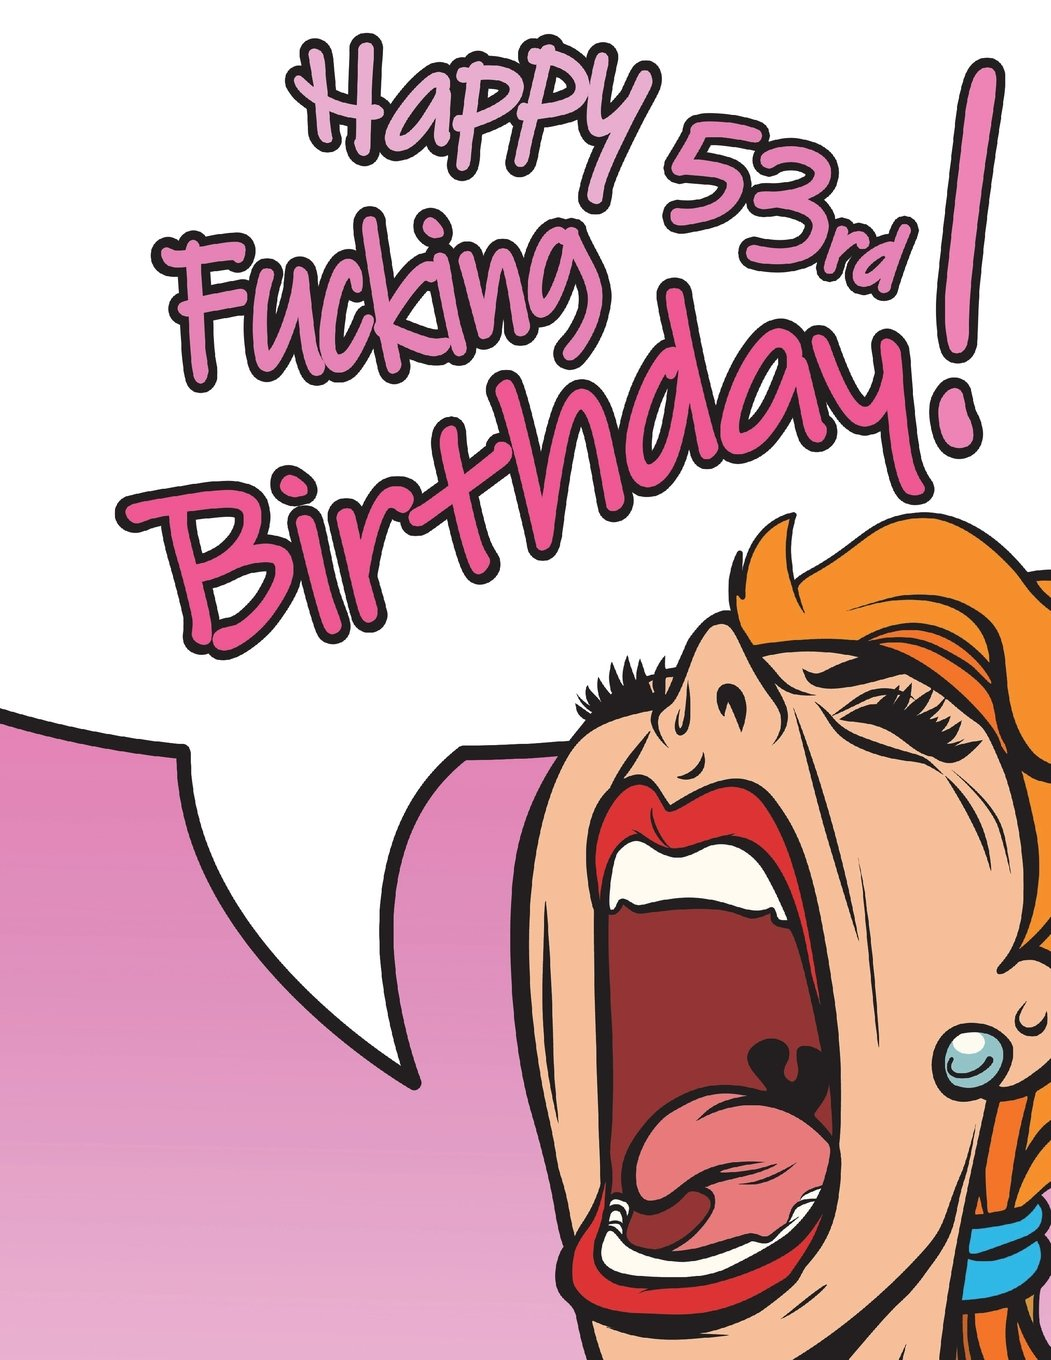 "Happy Fucking 53rd Birthday!: Notebook, Journal, Dairy, 105 Lined Pages, Funny Birthday Gifts for 53 Year Old Women, Daughter, Granddaughter, Mom, ... Co-worker, Gag Gifts, Book Size 8 1/2"" x 11"" PDF"